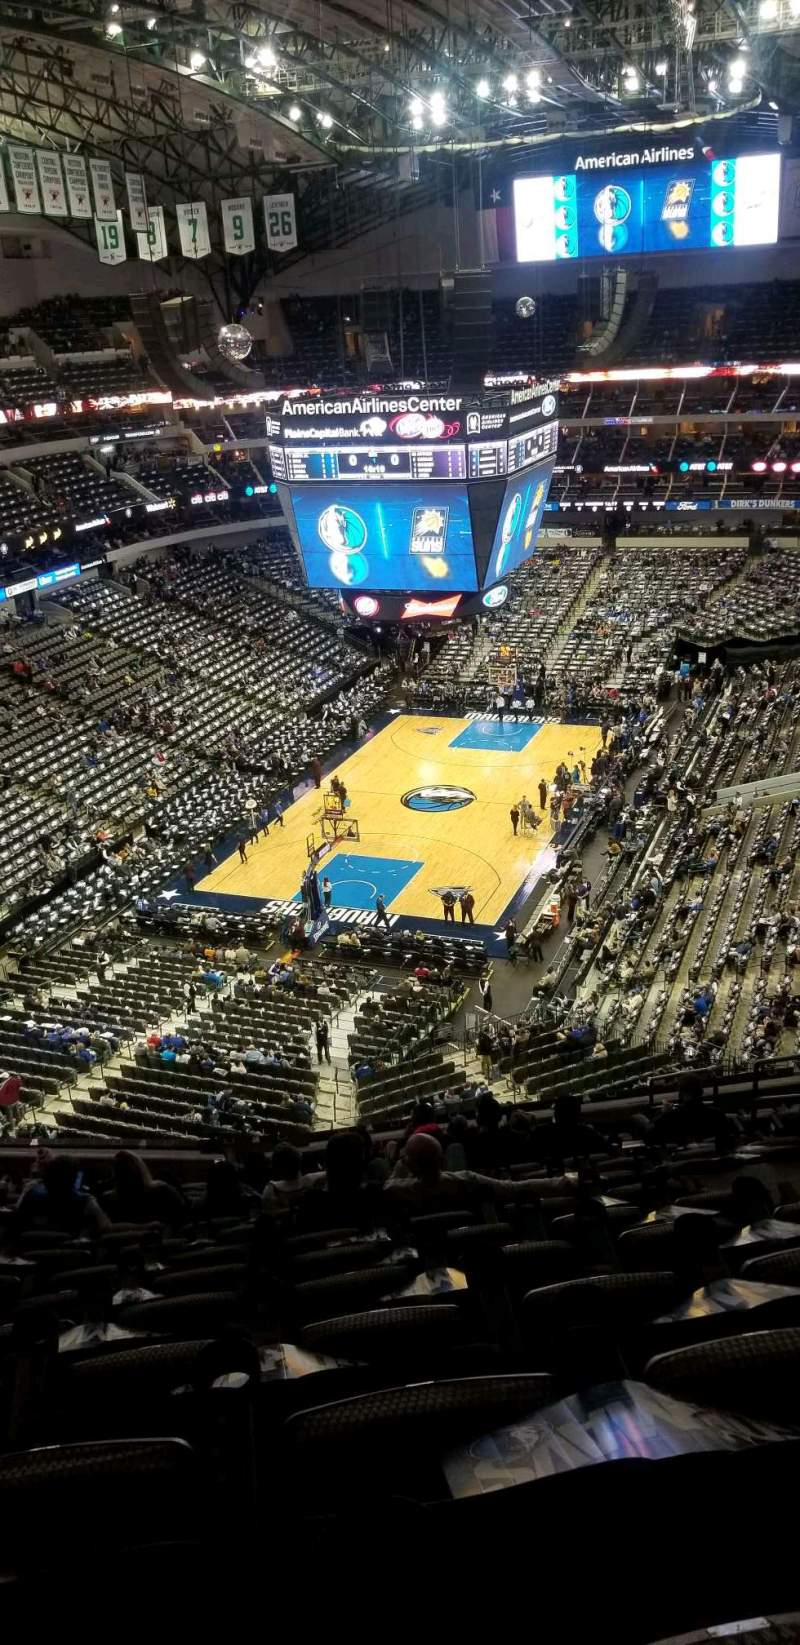 Seating view for American Airlines Center Section 333 Row k Seat 7